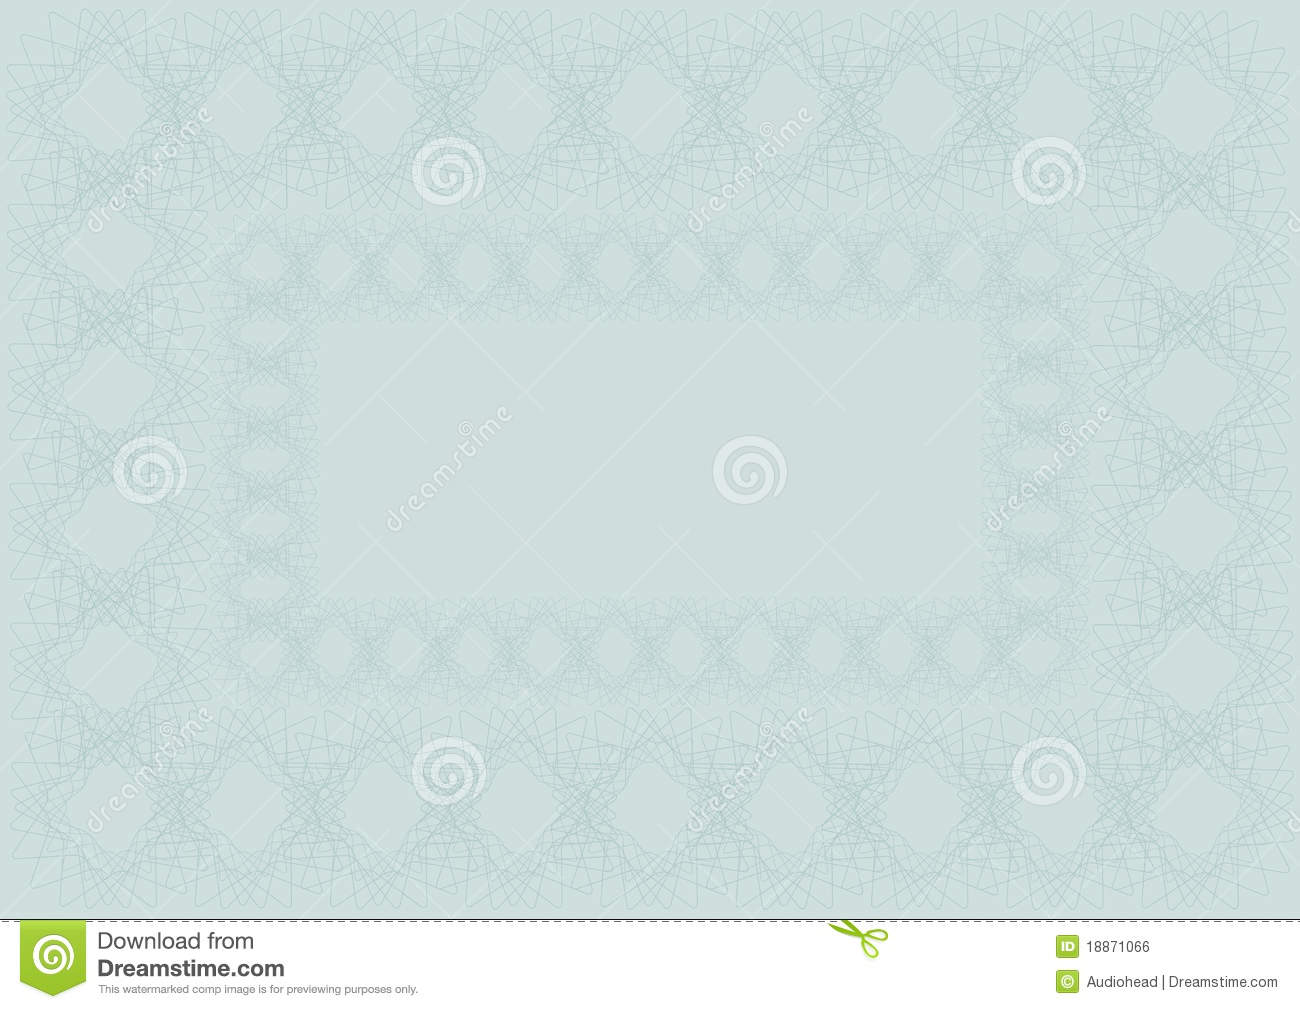 Blank Certificate Background Royalty Free Stock Image ...